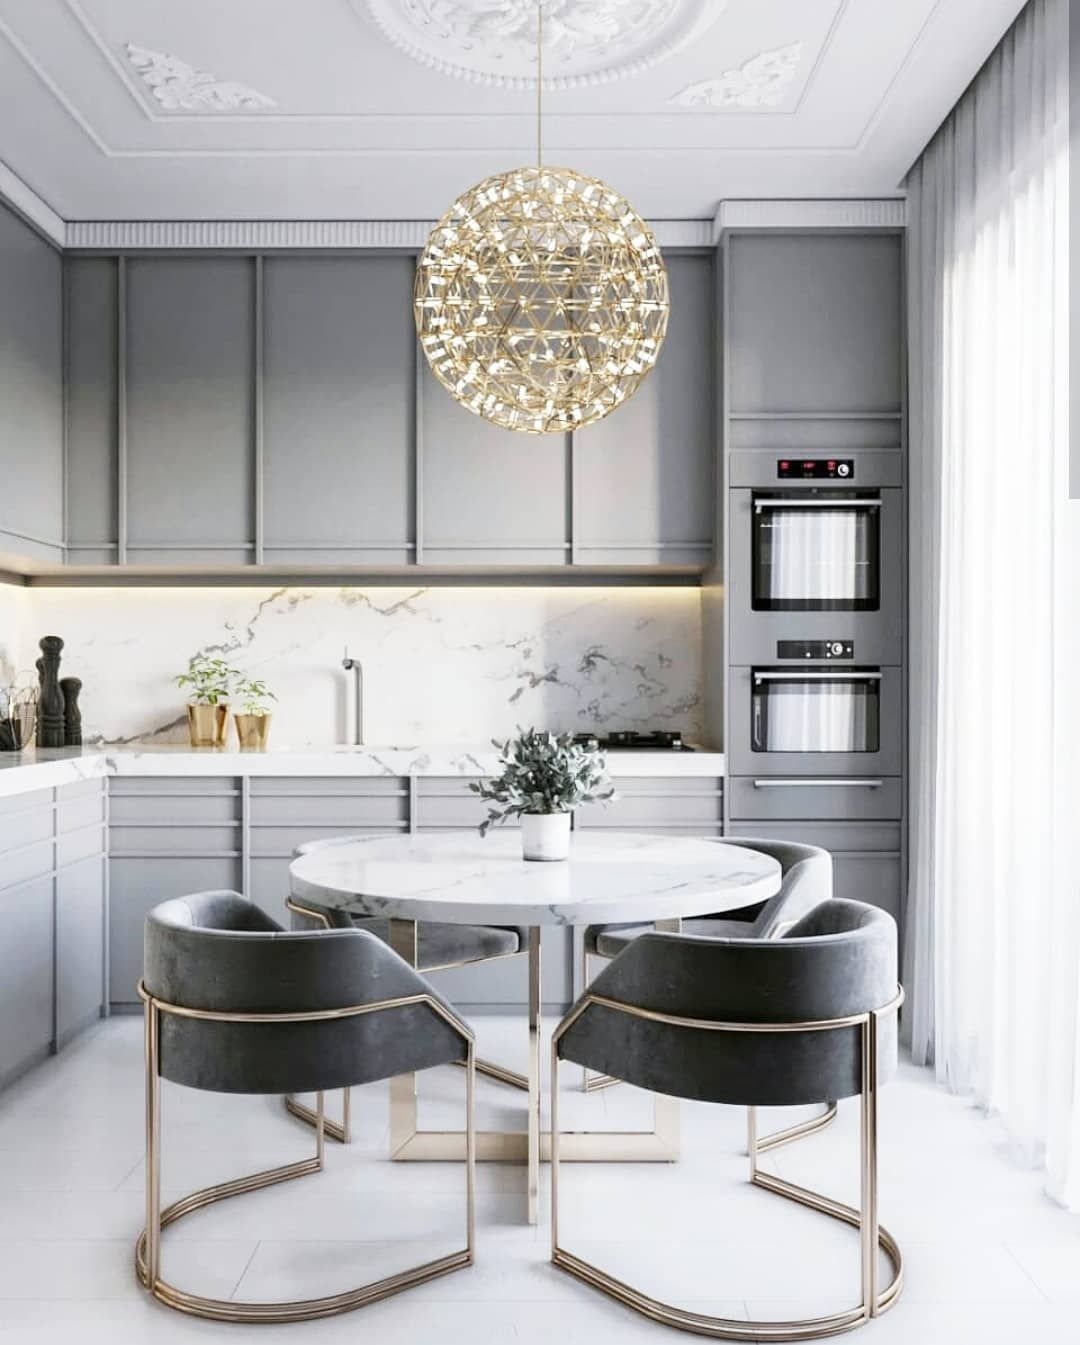 dining room, white seamless floor, white round marble table, grey chairs with golden lines, golden pendant, grey cabinet, white marble backsplash and countertop